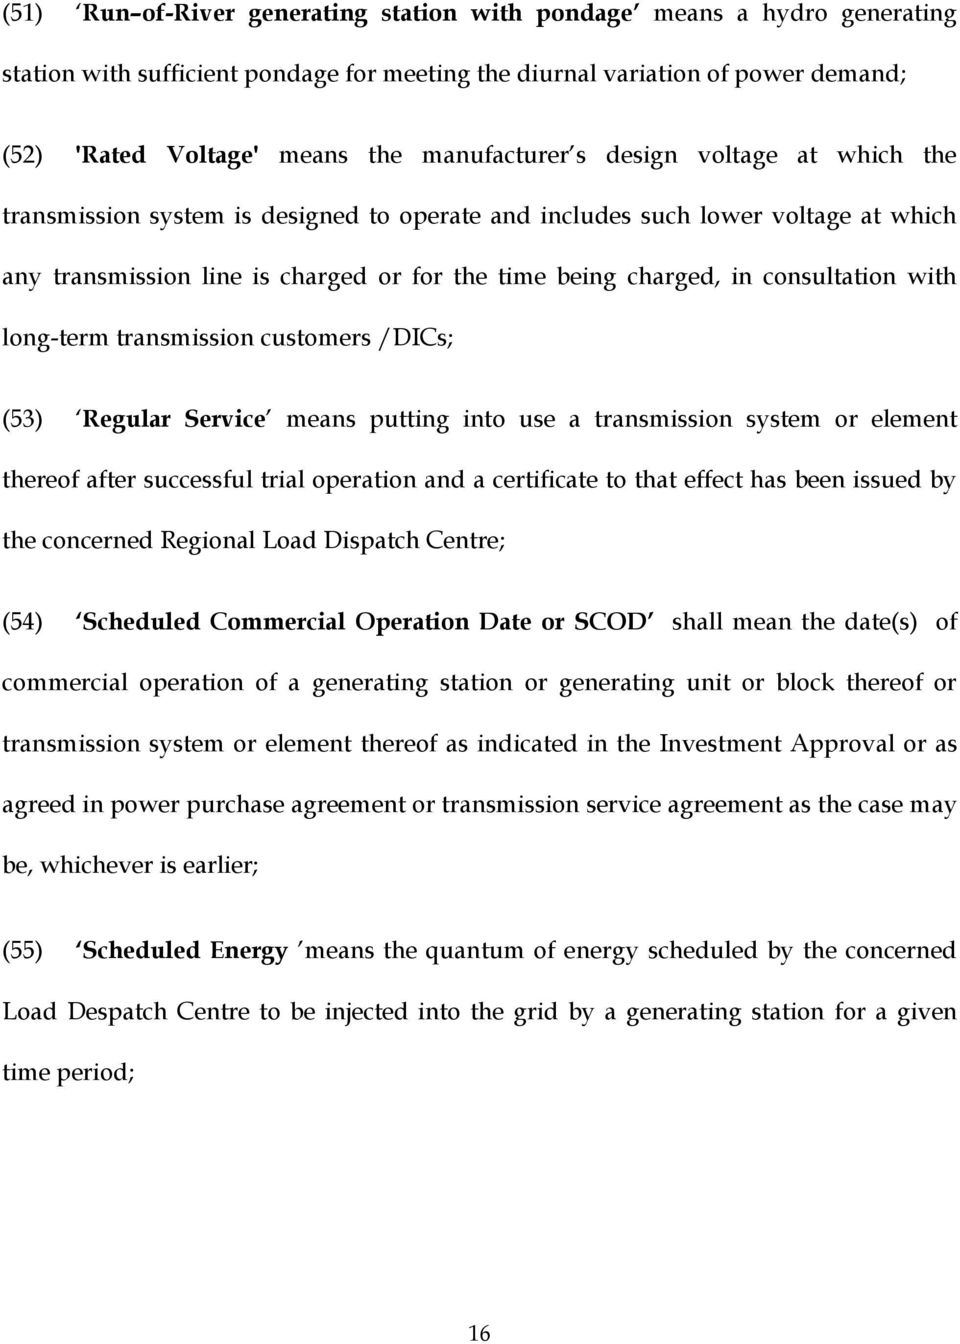 consultation with long-term transmission customers /DICs; (53) Regular Service means putting into use a transmission system or element thereof after successful trial operation and a certificate to